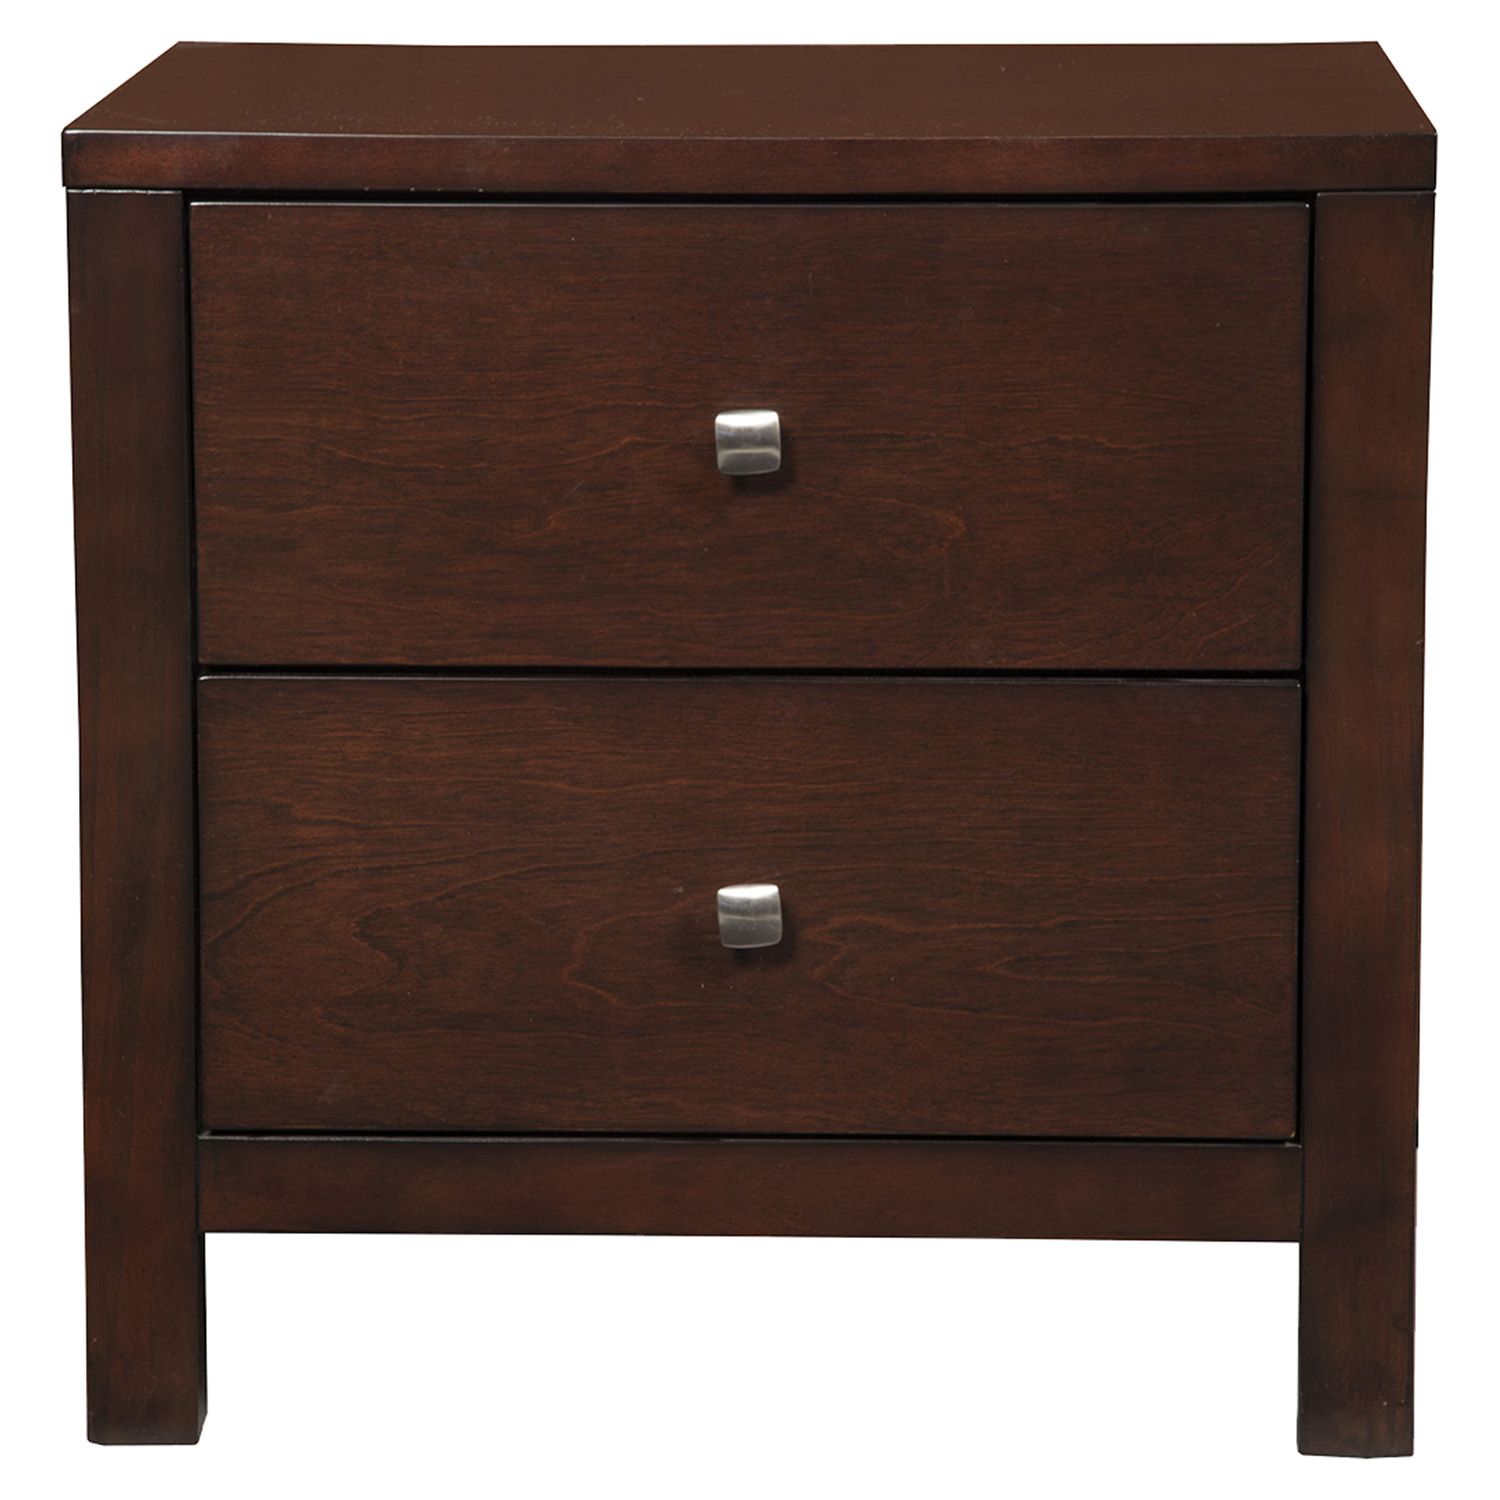 Solana 2-Drawer Nightstand - Cappuccino